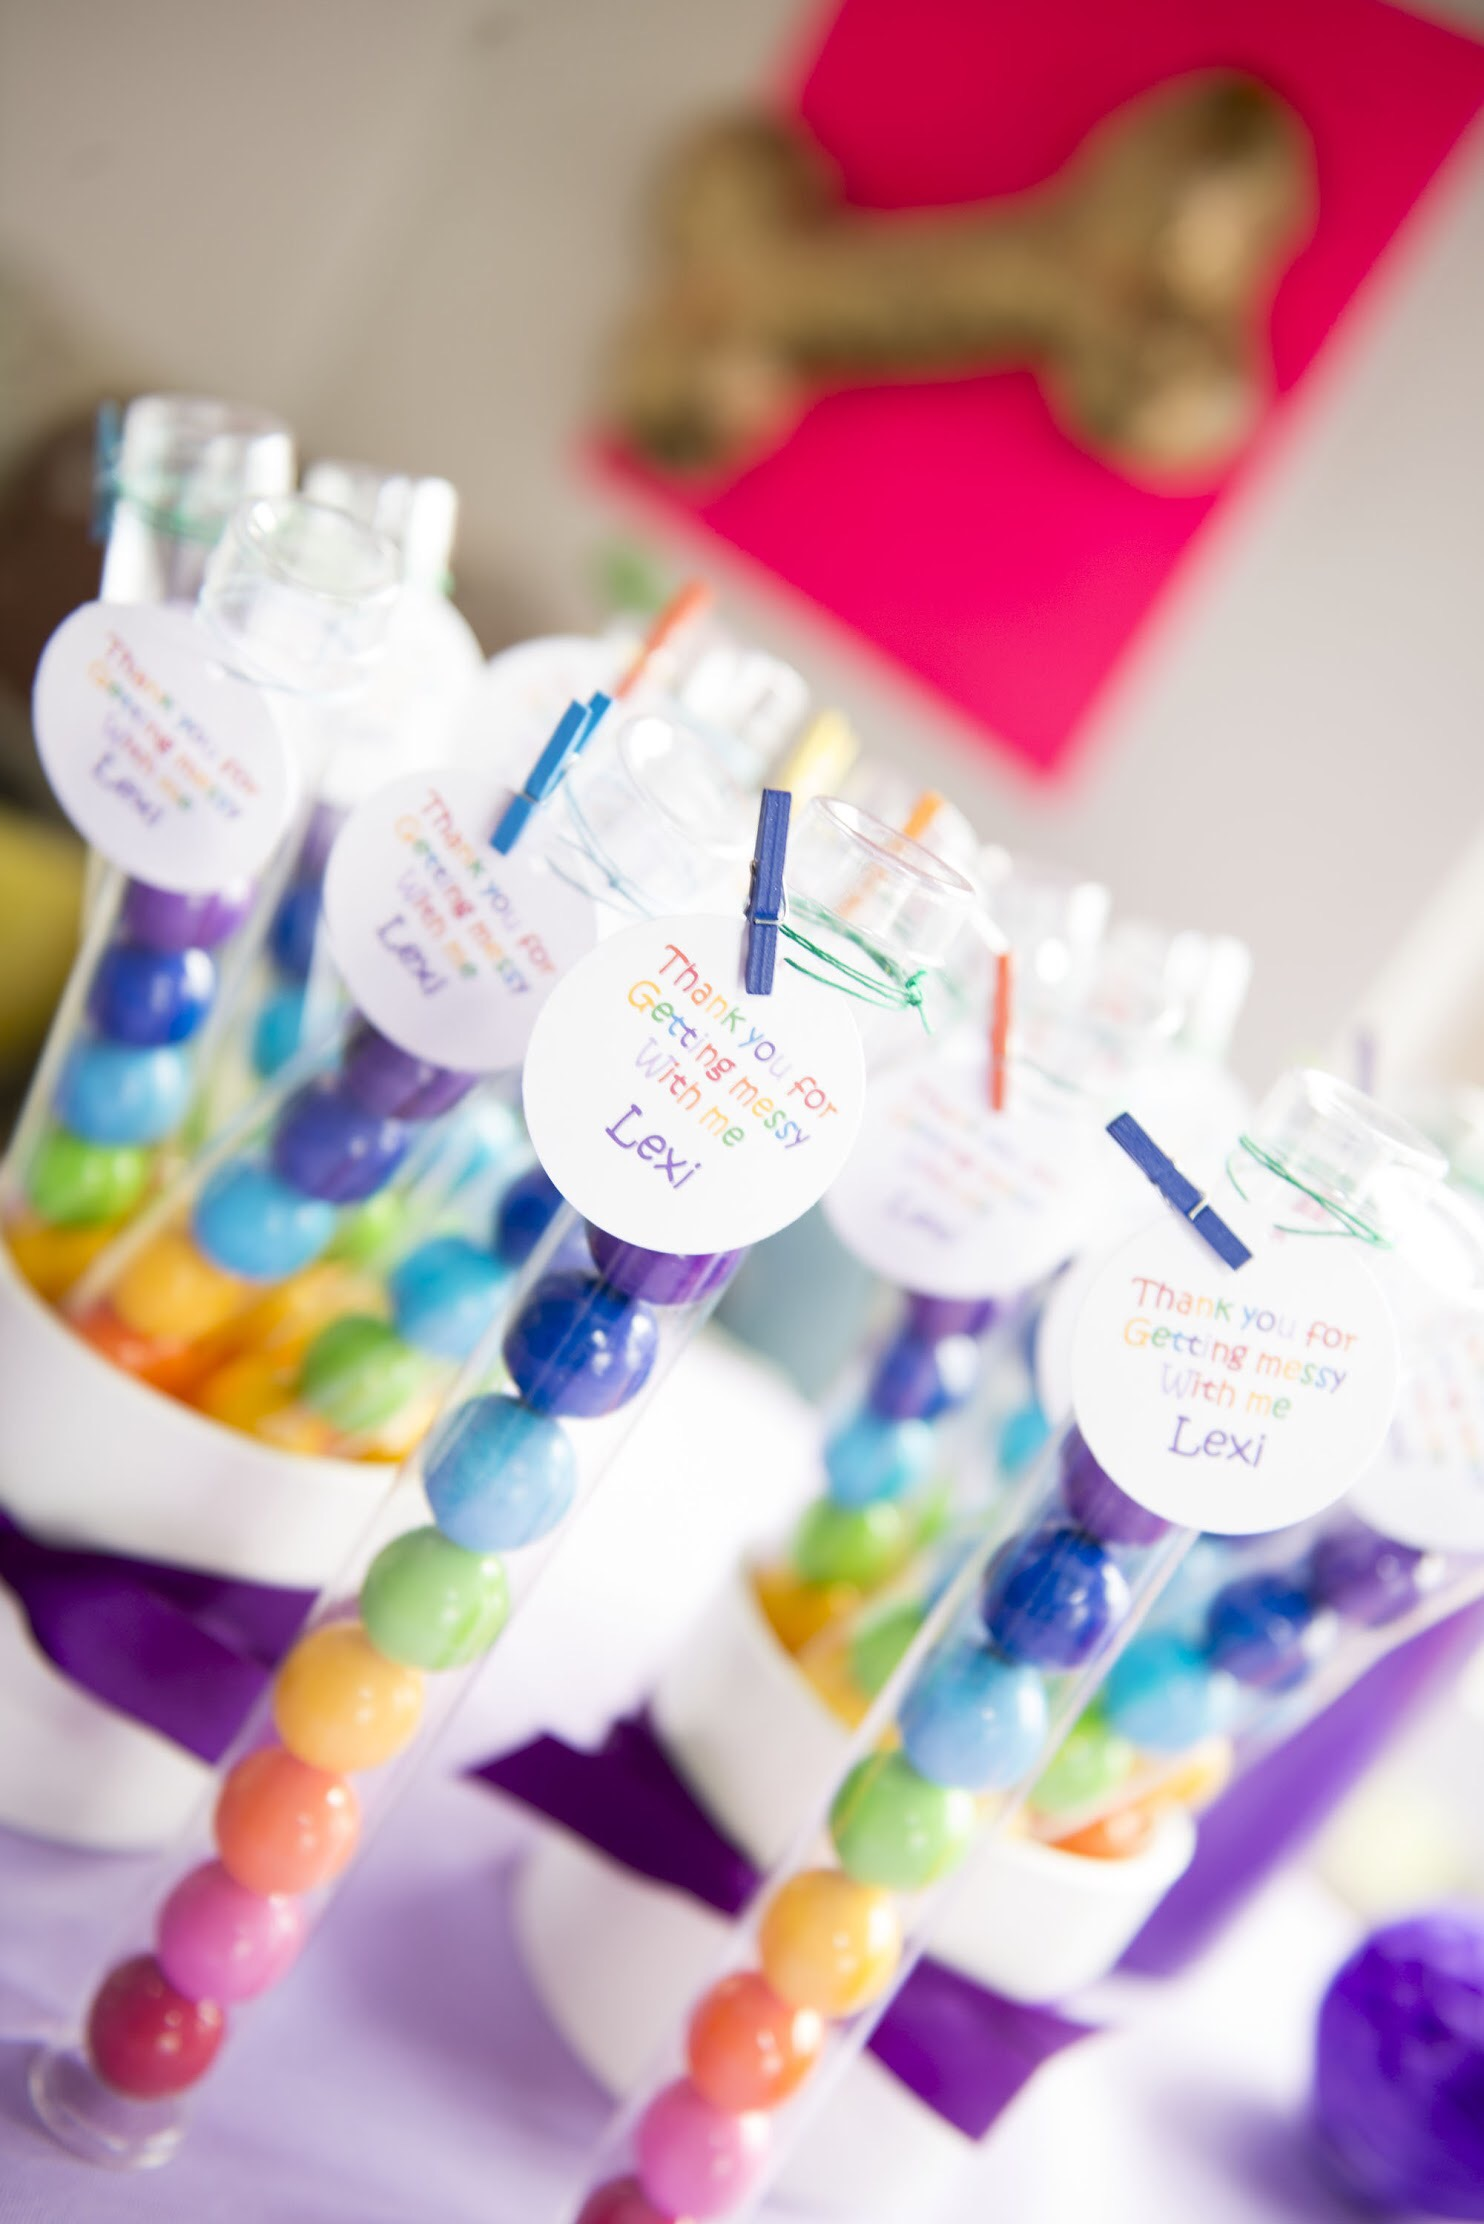 Rainbow colored gum balls are the perfect party favor for an art party! Click to see all the art themed party ideas on Mint Event Design www.minteventdesign.com #kidsparty #kidspartyideas #birthdaypartyideas #artparty #rainbowparty